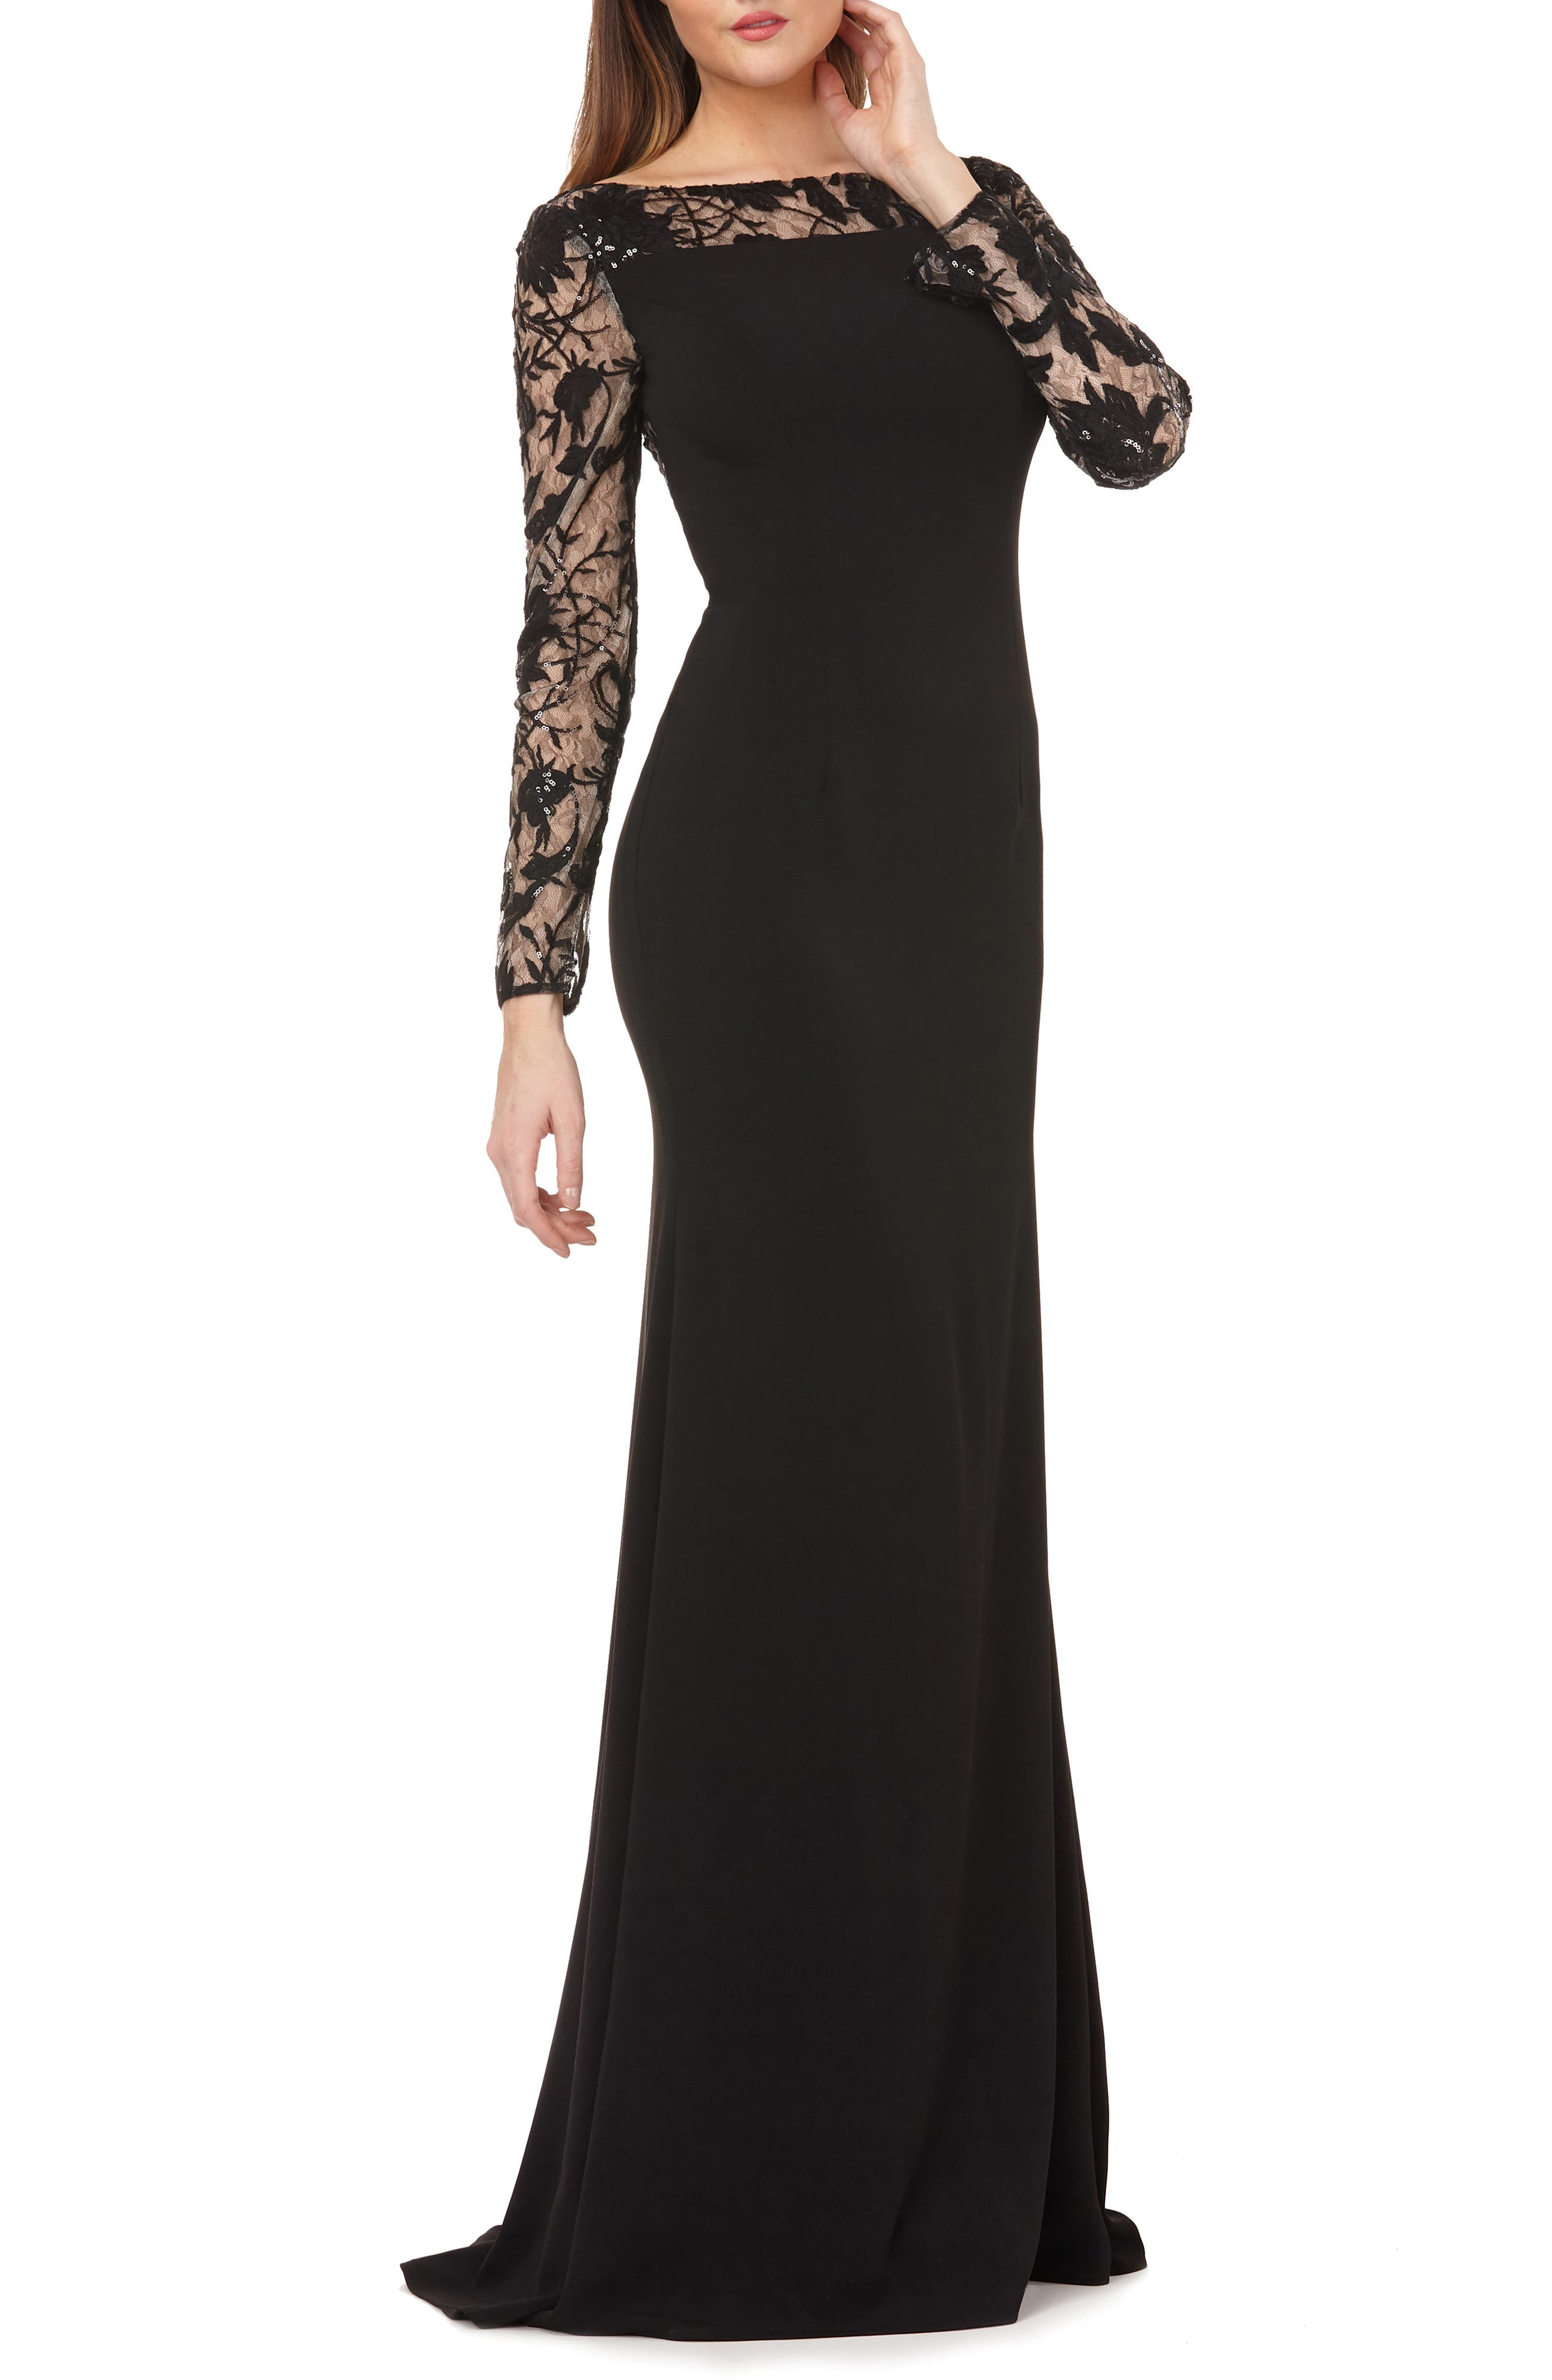 CARMEN MARC VALVO INFUSION Lace & Crepe Gown in Black